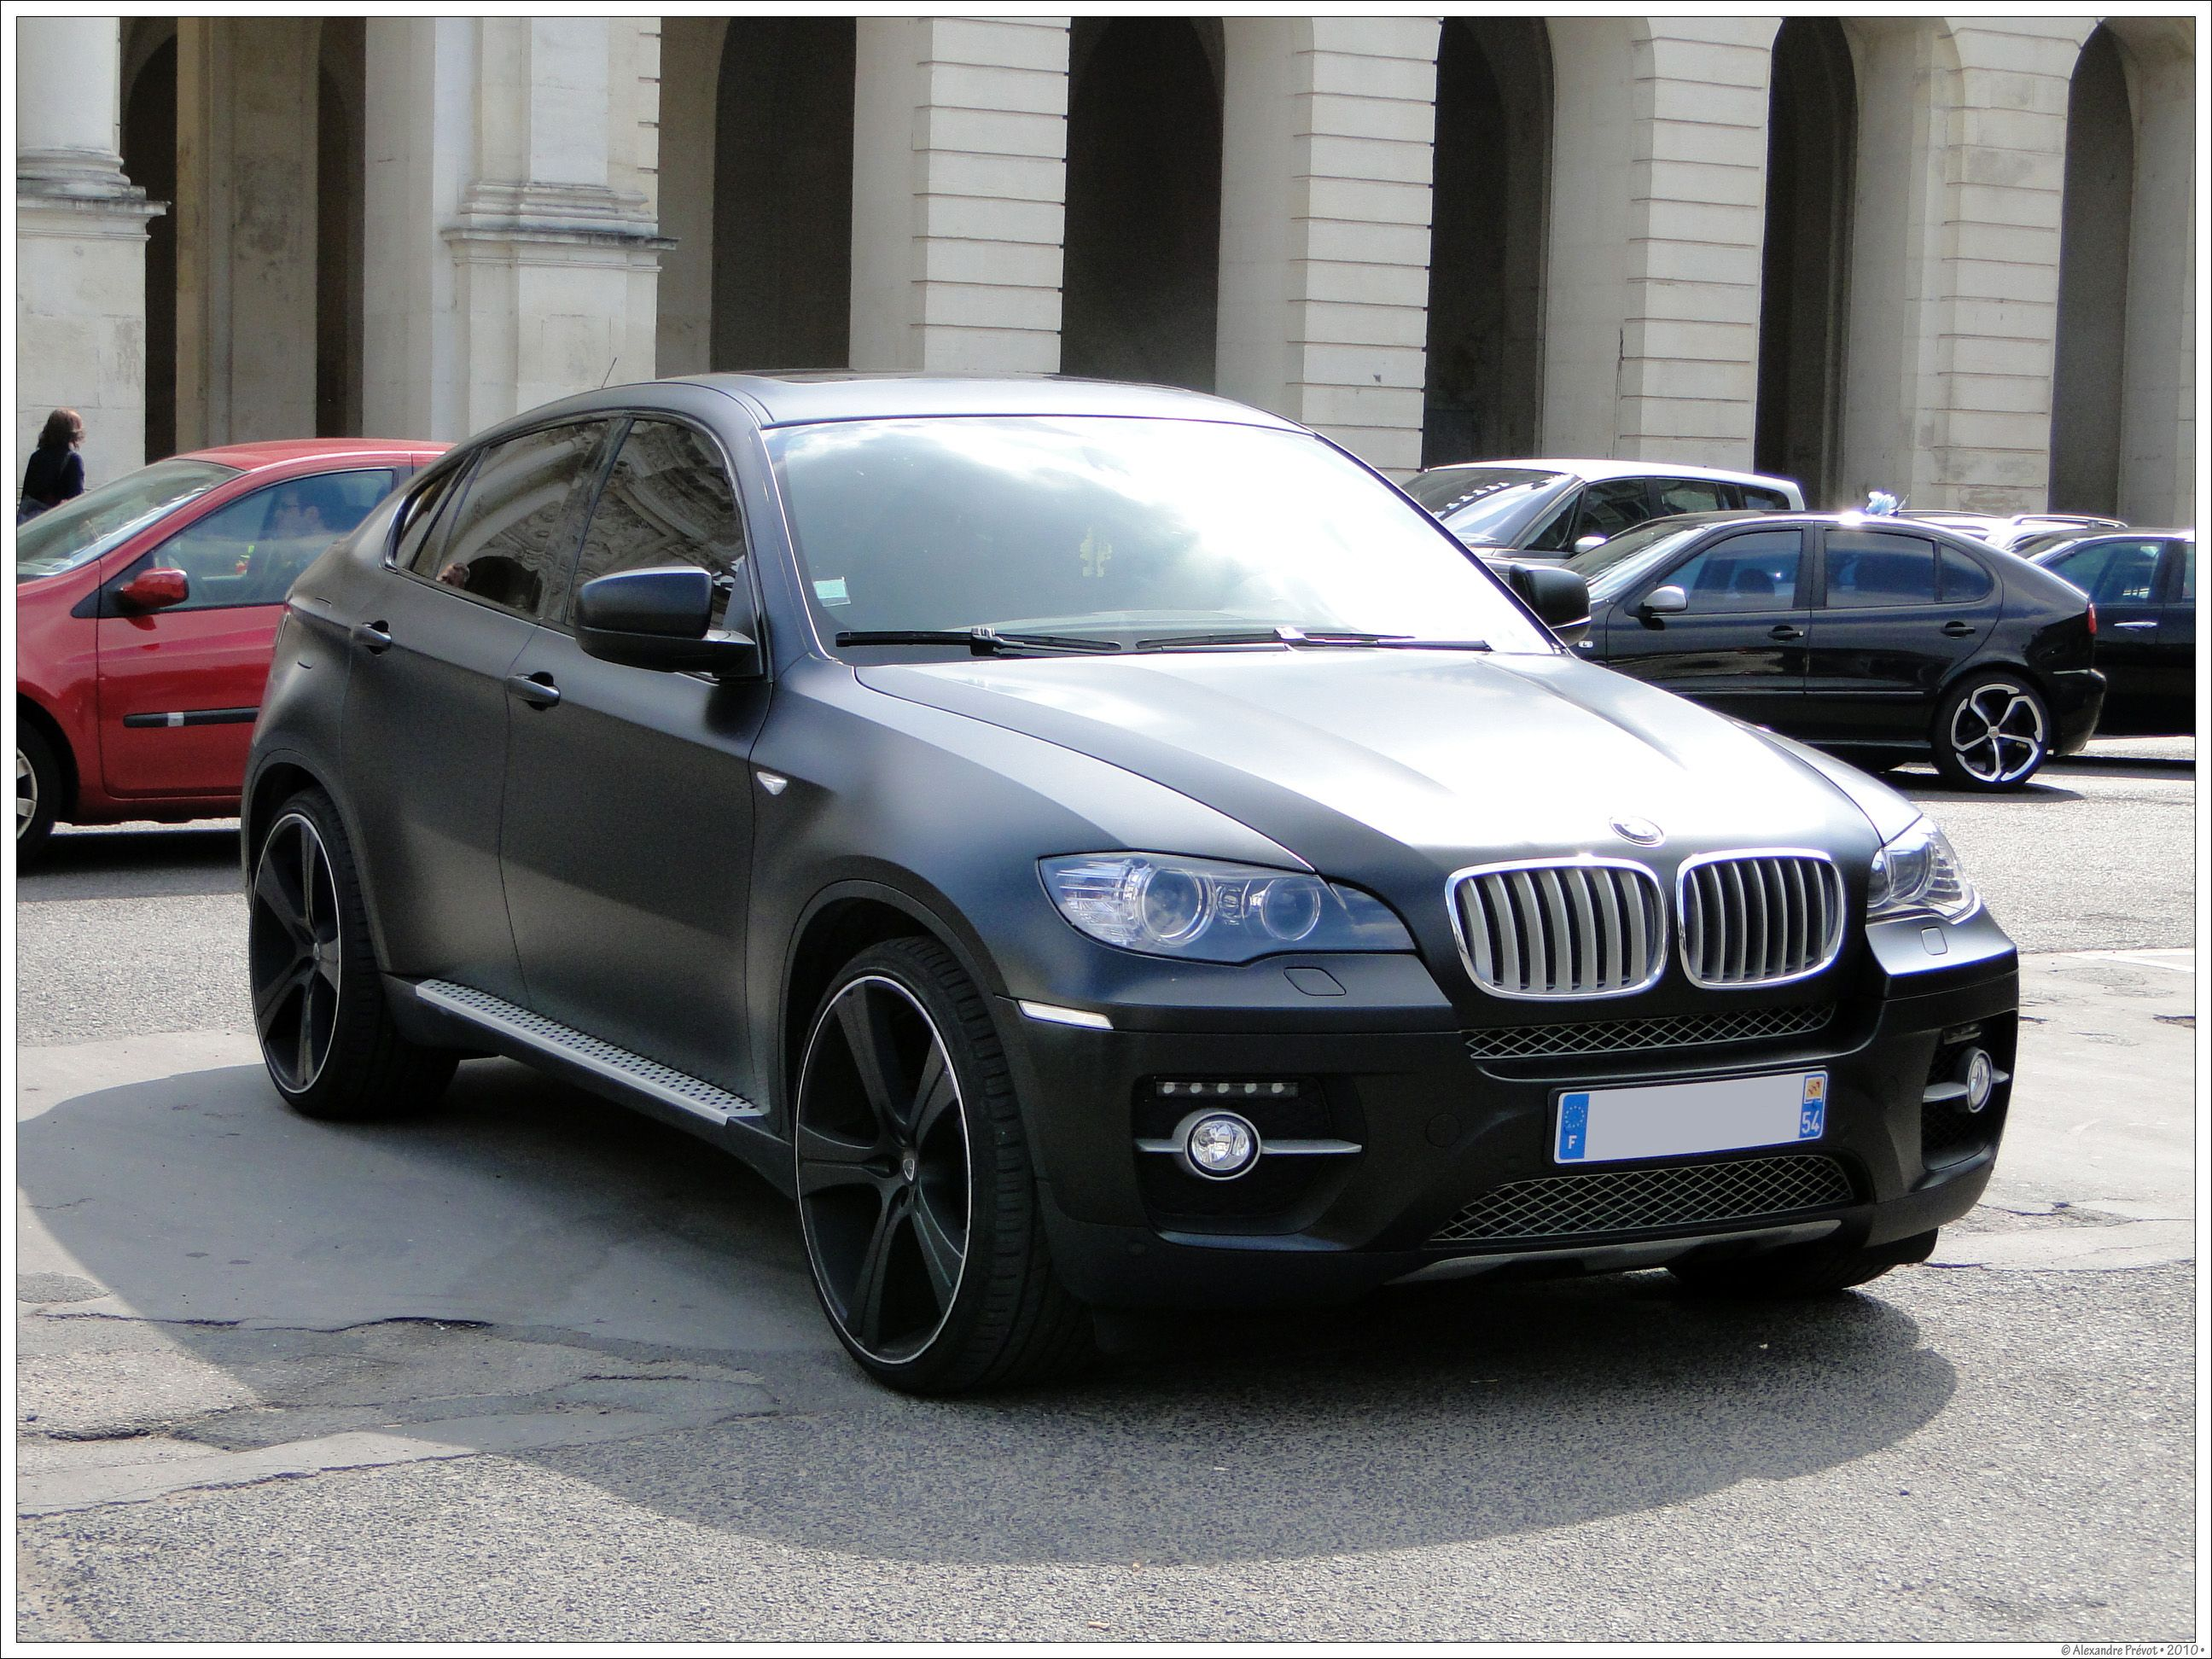 bmw x6 noir annonce vendue bmw x6 f16 m50d suv noir occasion 79 900 2 900 km vente de voiture d. Black Bedroom Furniture Sets. Home Design Ideas